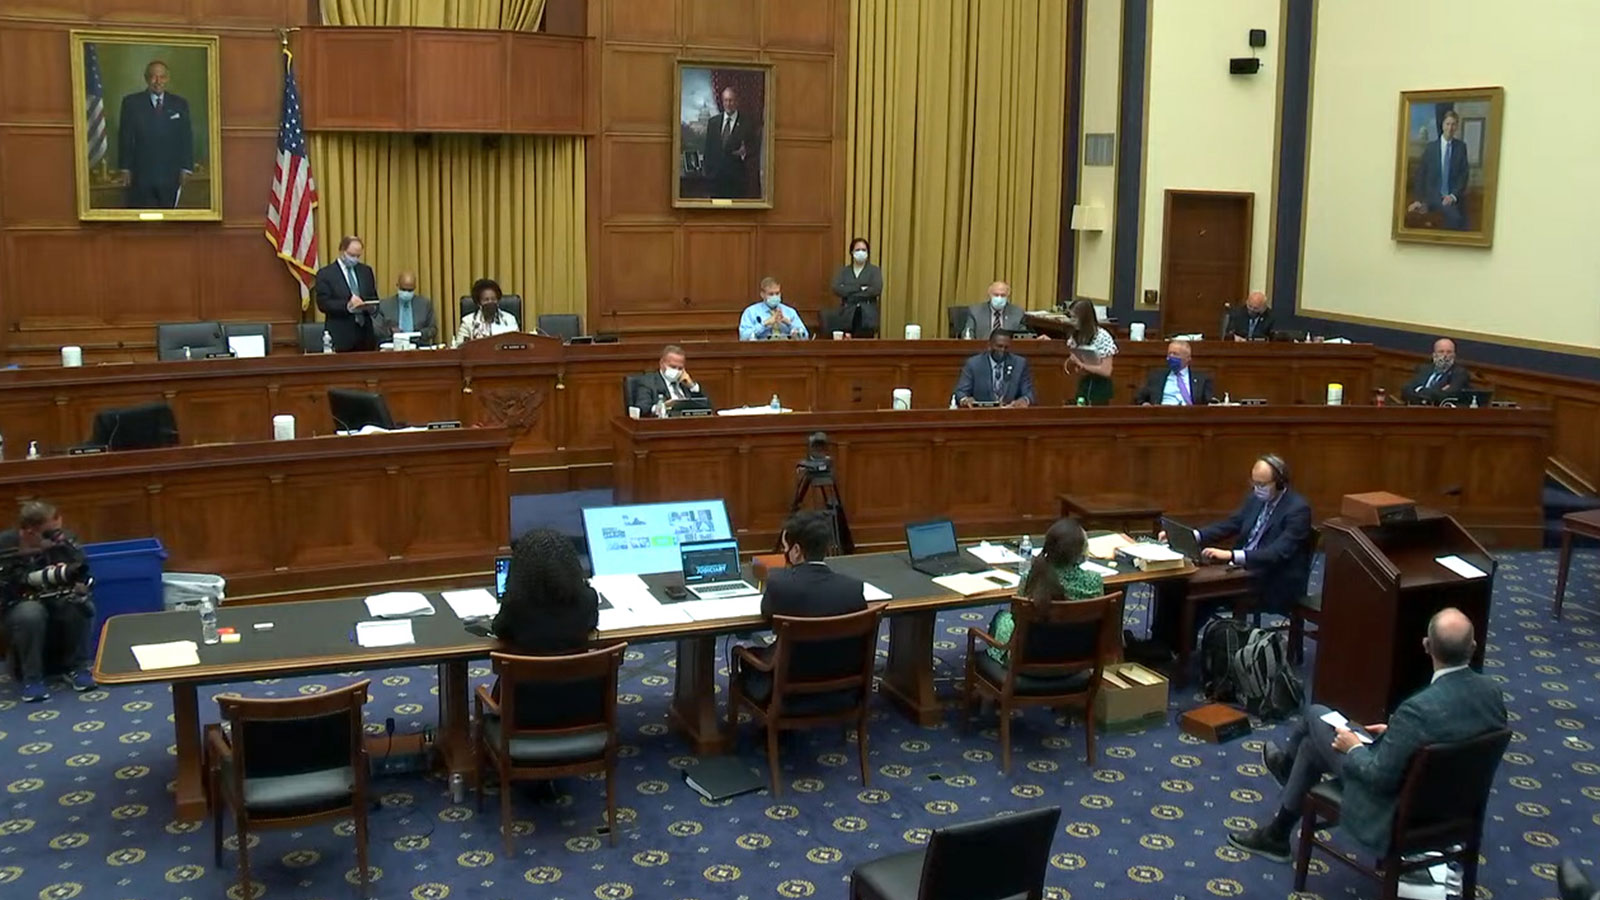 Historic Vote on HR-40, Commission to Study and Develop Reparation Proposals for African Americans